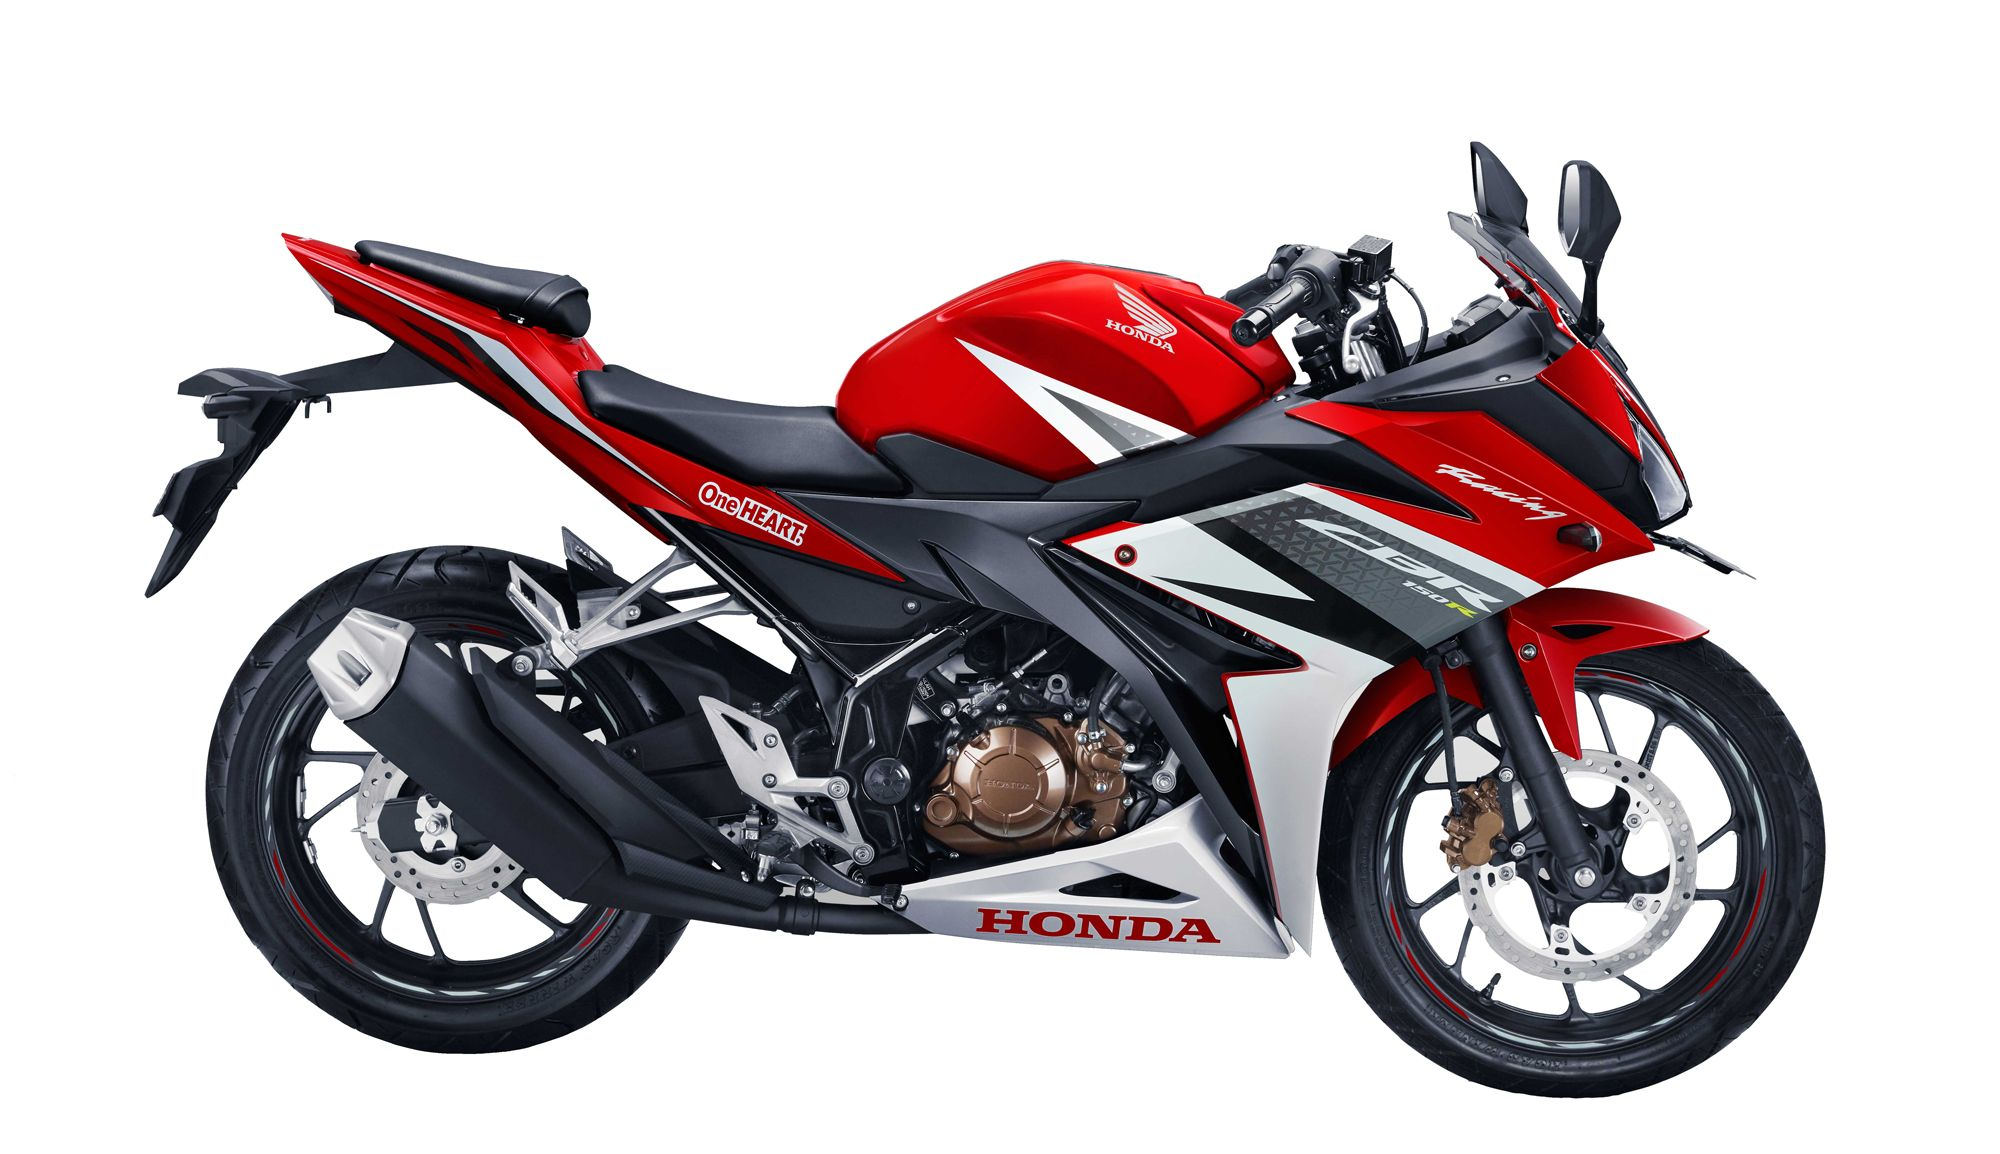 Kredit Motor Honda New Cbr 150r Racing Red Cermati